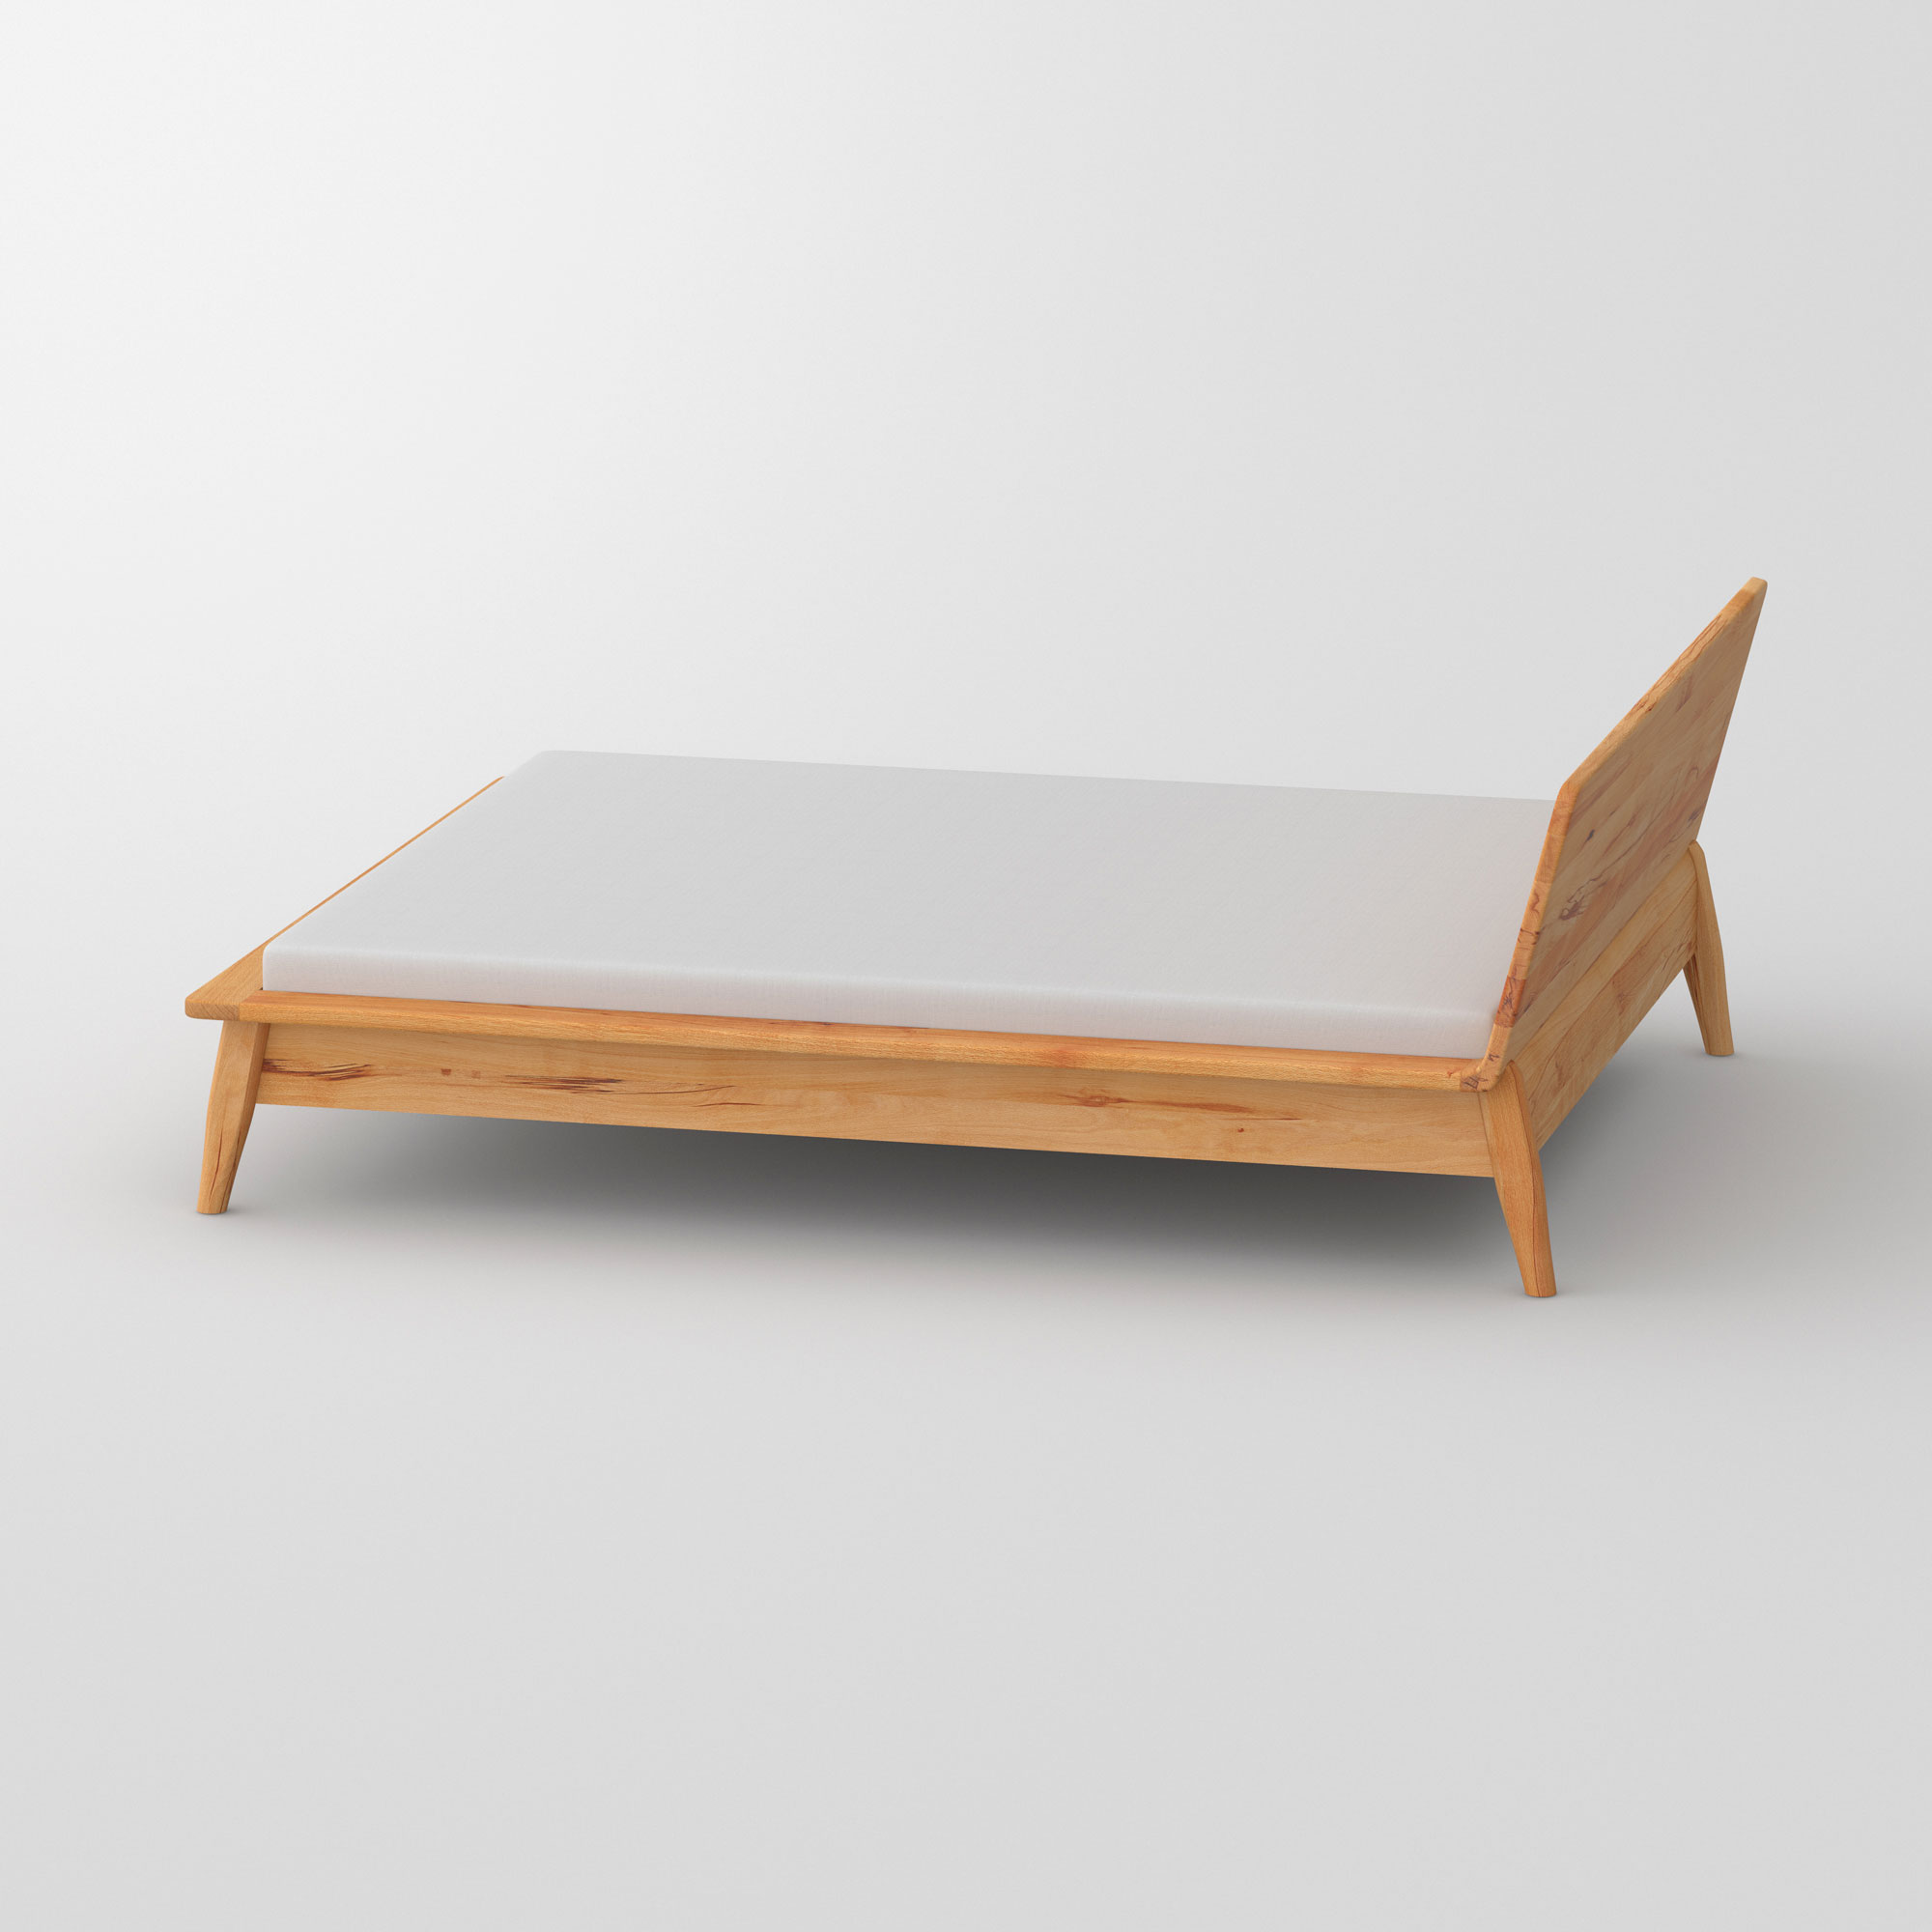 Designer Bed AETAS cam1 custom made in solid wood by vitamin design